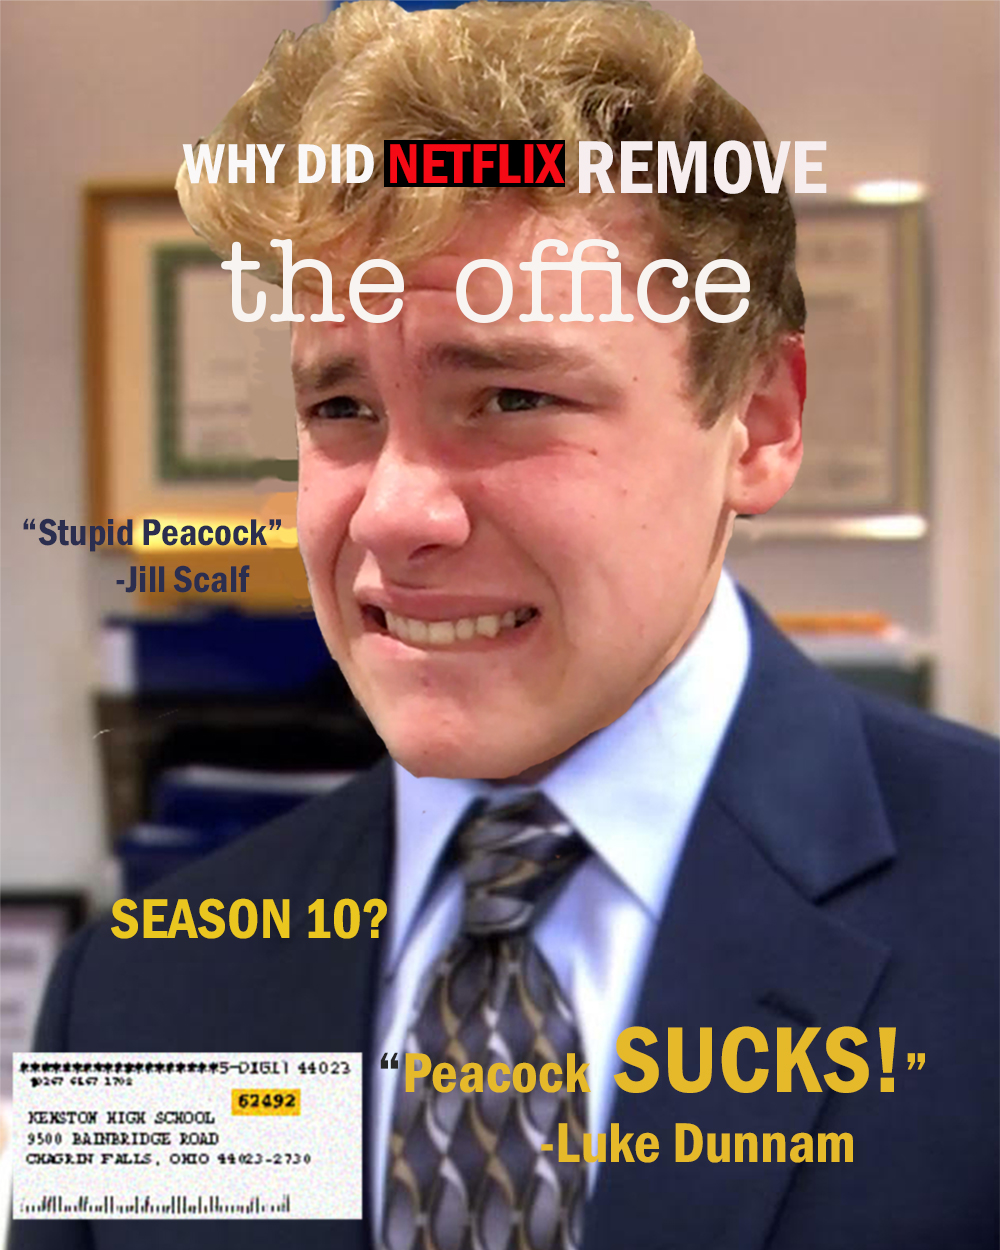 Luke Dunnam edited into the body of Michael Scott on a magazine cover regarding the removal of the office on netflix